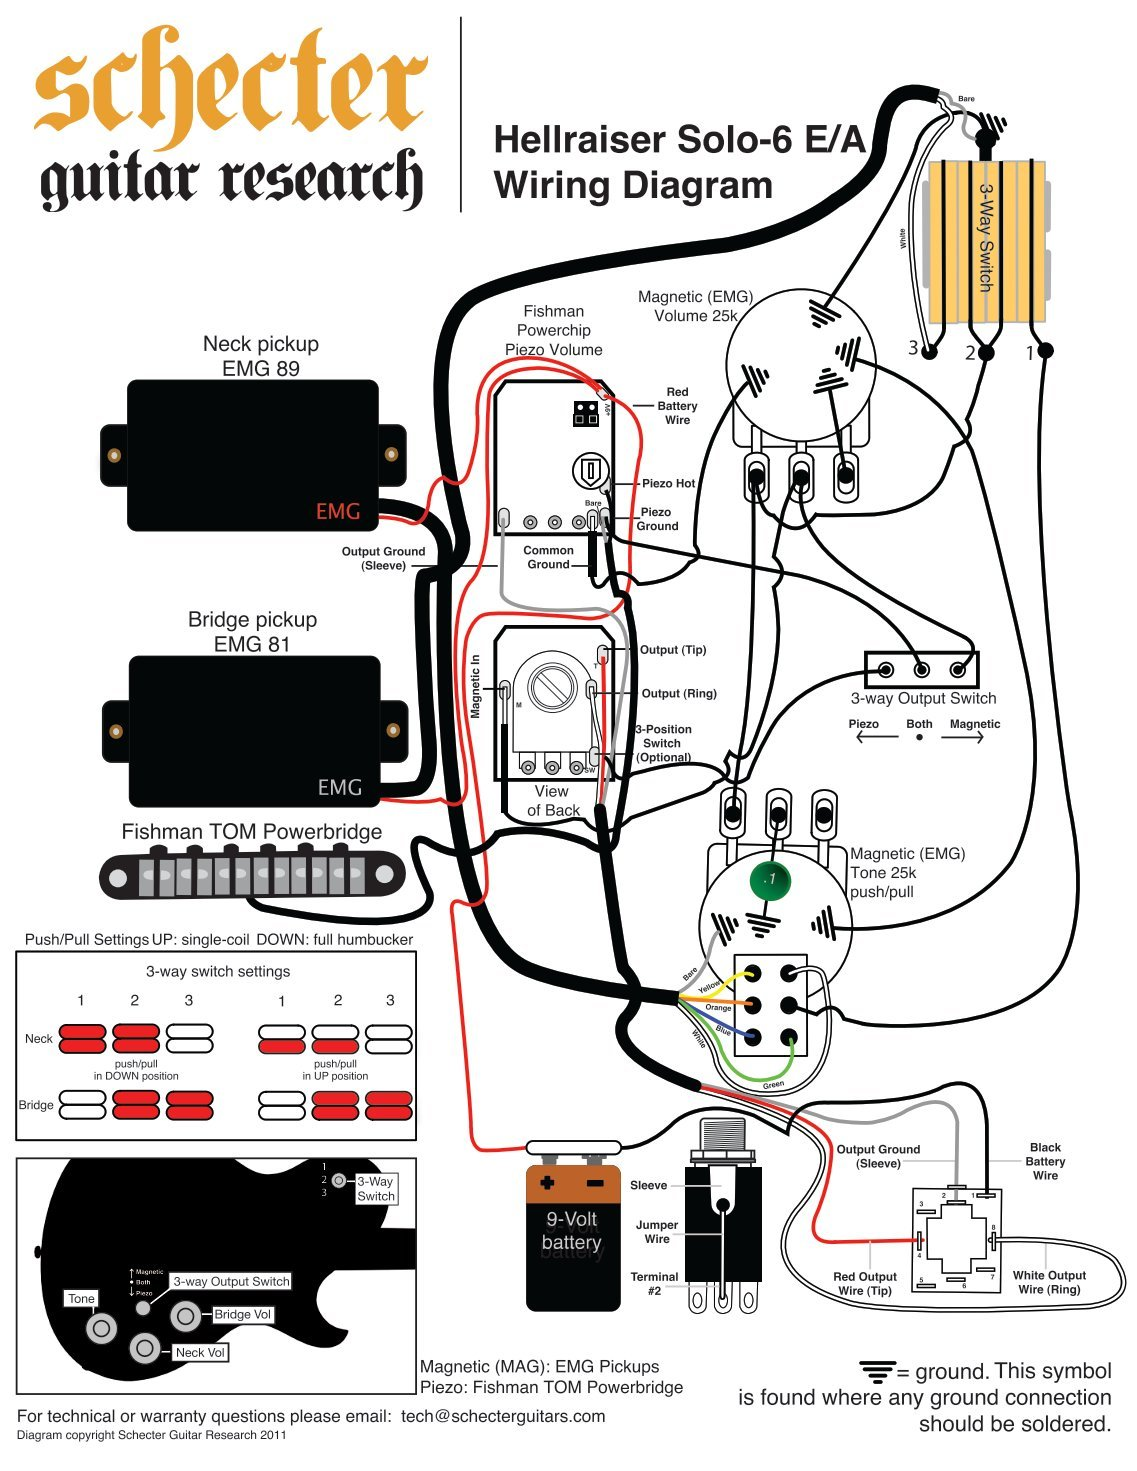 Washburn Wiring Schematics - 07 Mercury Milan Fuse Diagram for Wiring  Diagram SchematicsWiring Diagram Schematics